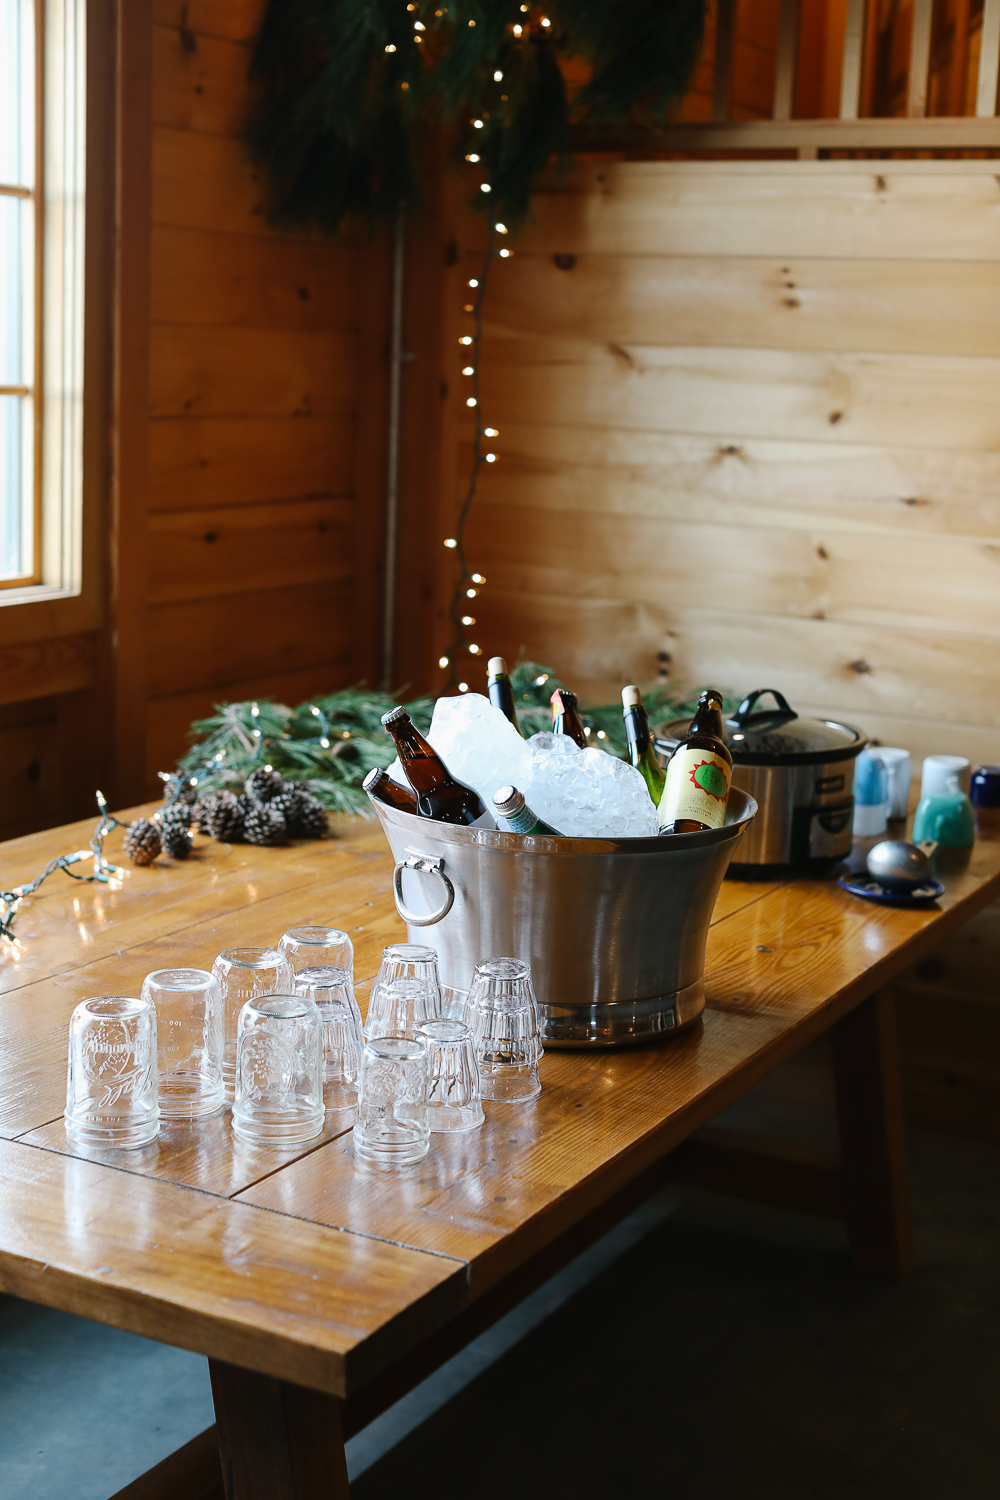 Hot cider and other festive drinks